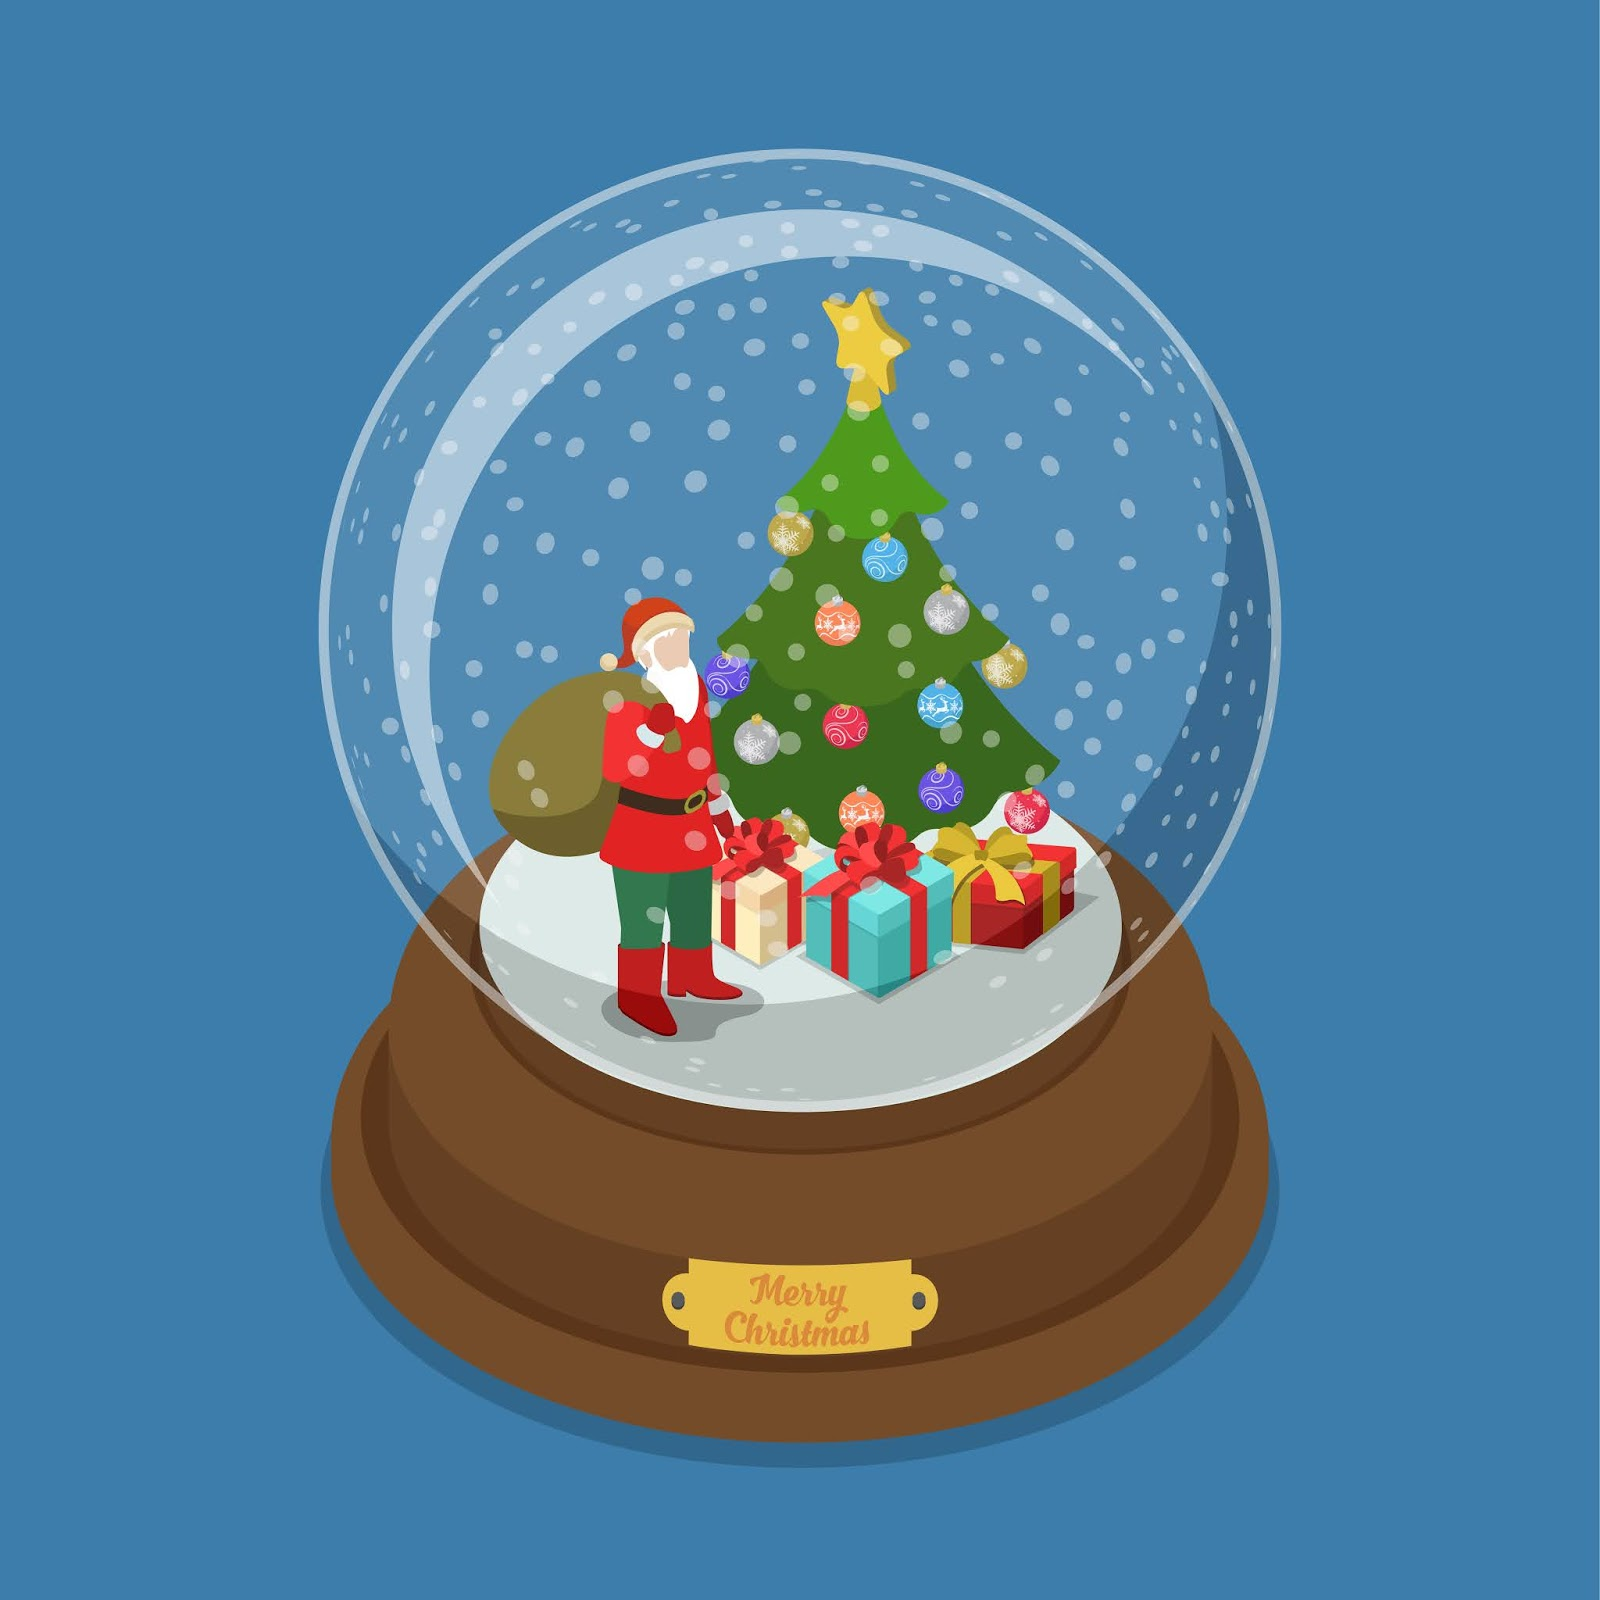 Merry Christmas Crystal Ball Free Download Vector CDR, AI, EPS and PNG Formats